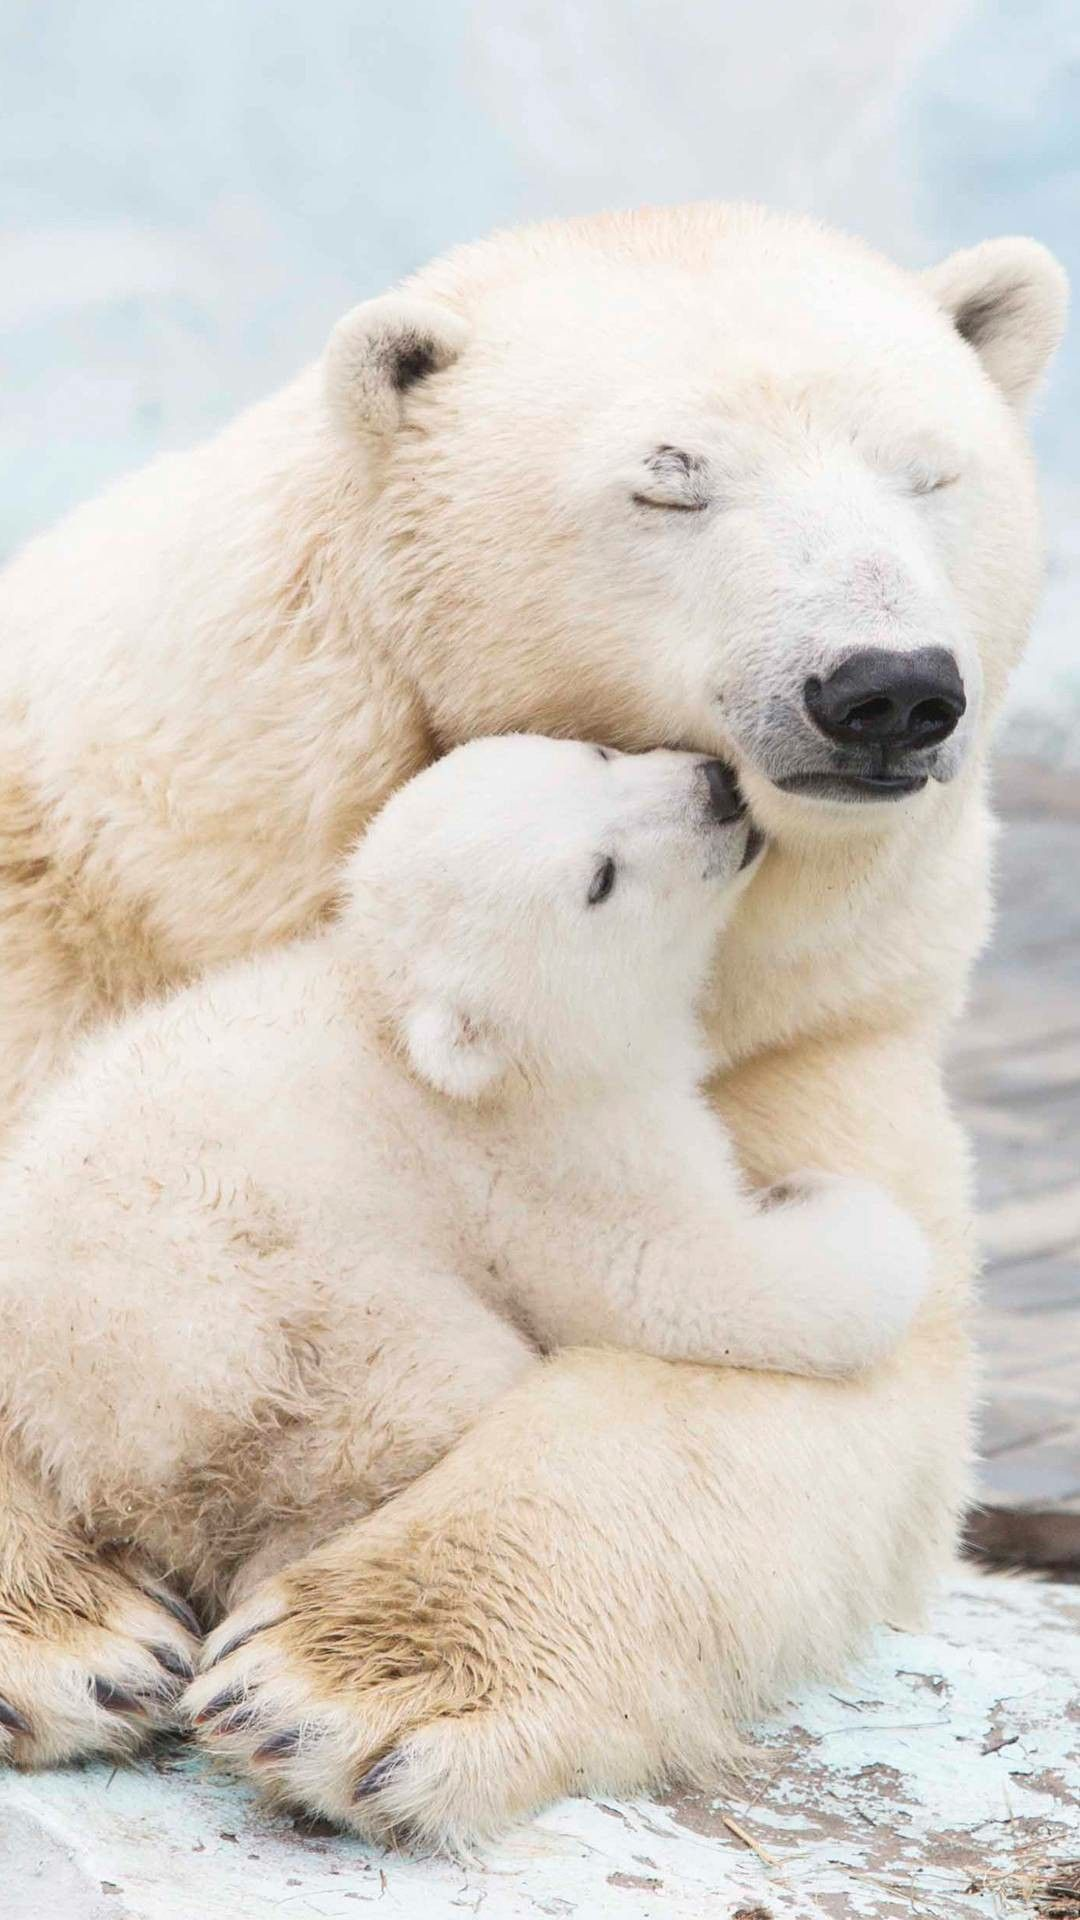 Mama Bear protecting her Young. Polar bears are hugely